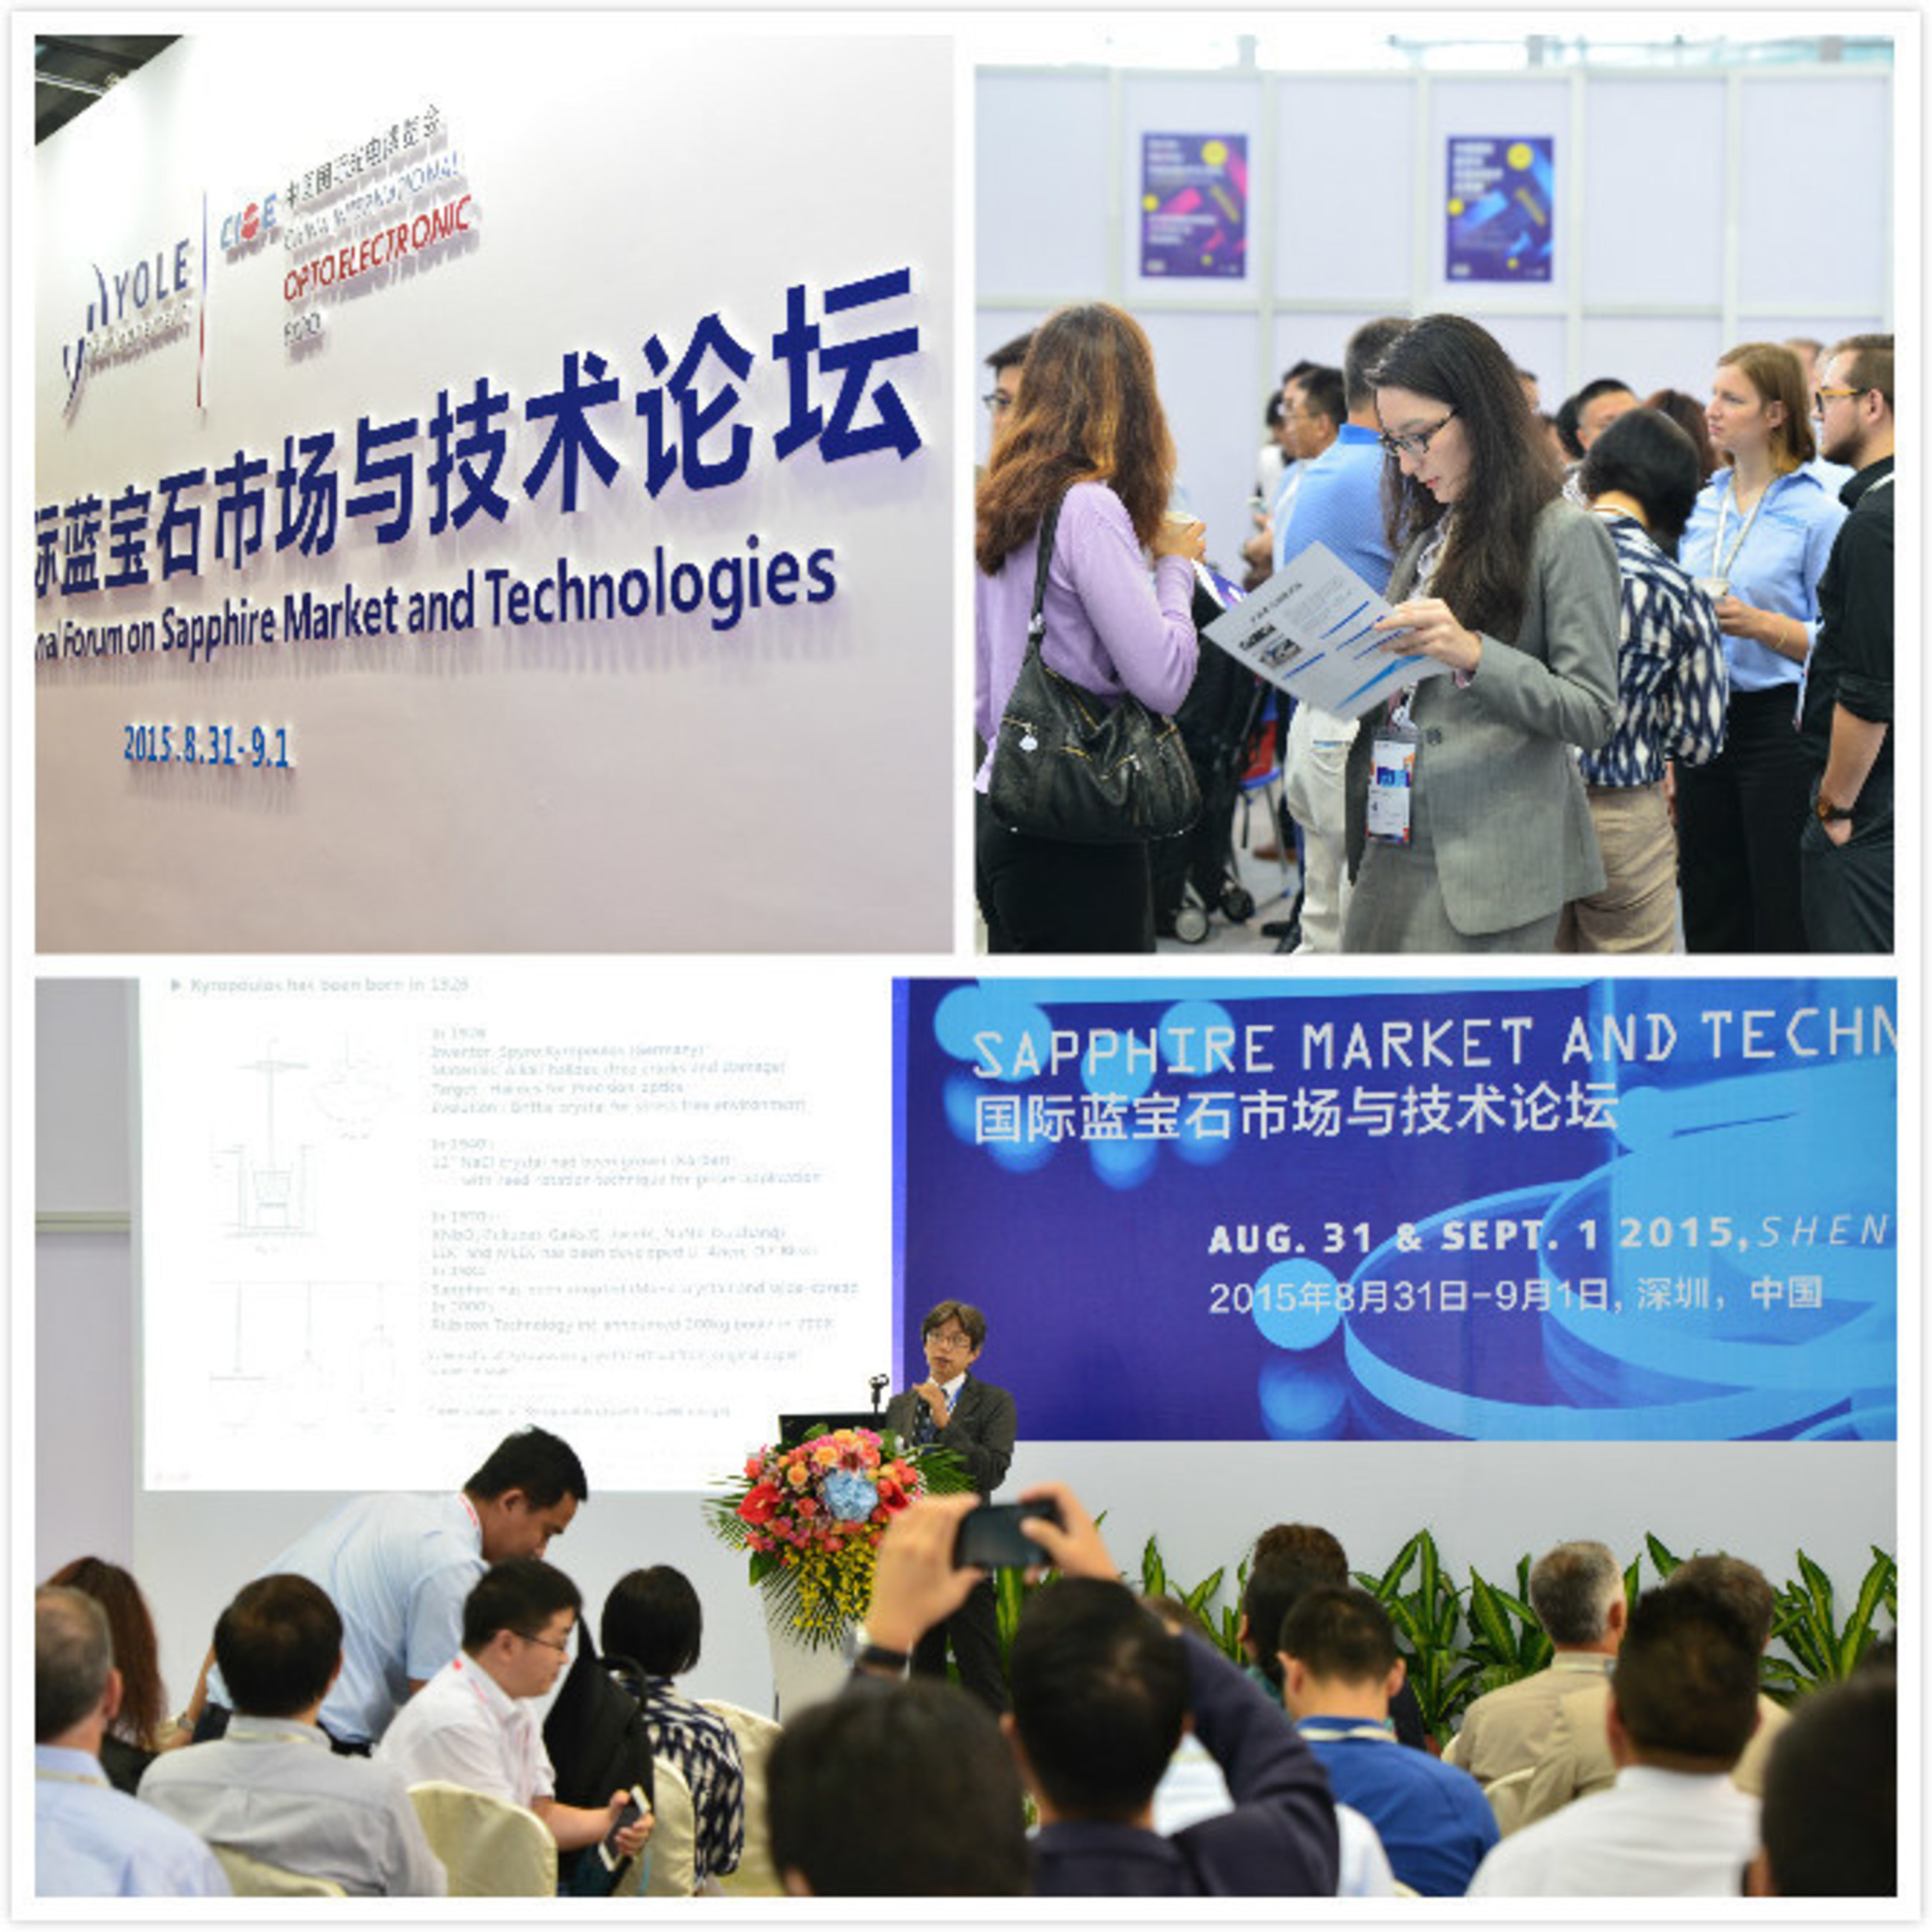 Tremendous Success for the First International Conference on Sapphire and its Applications